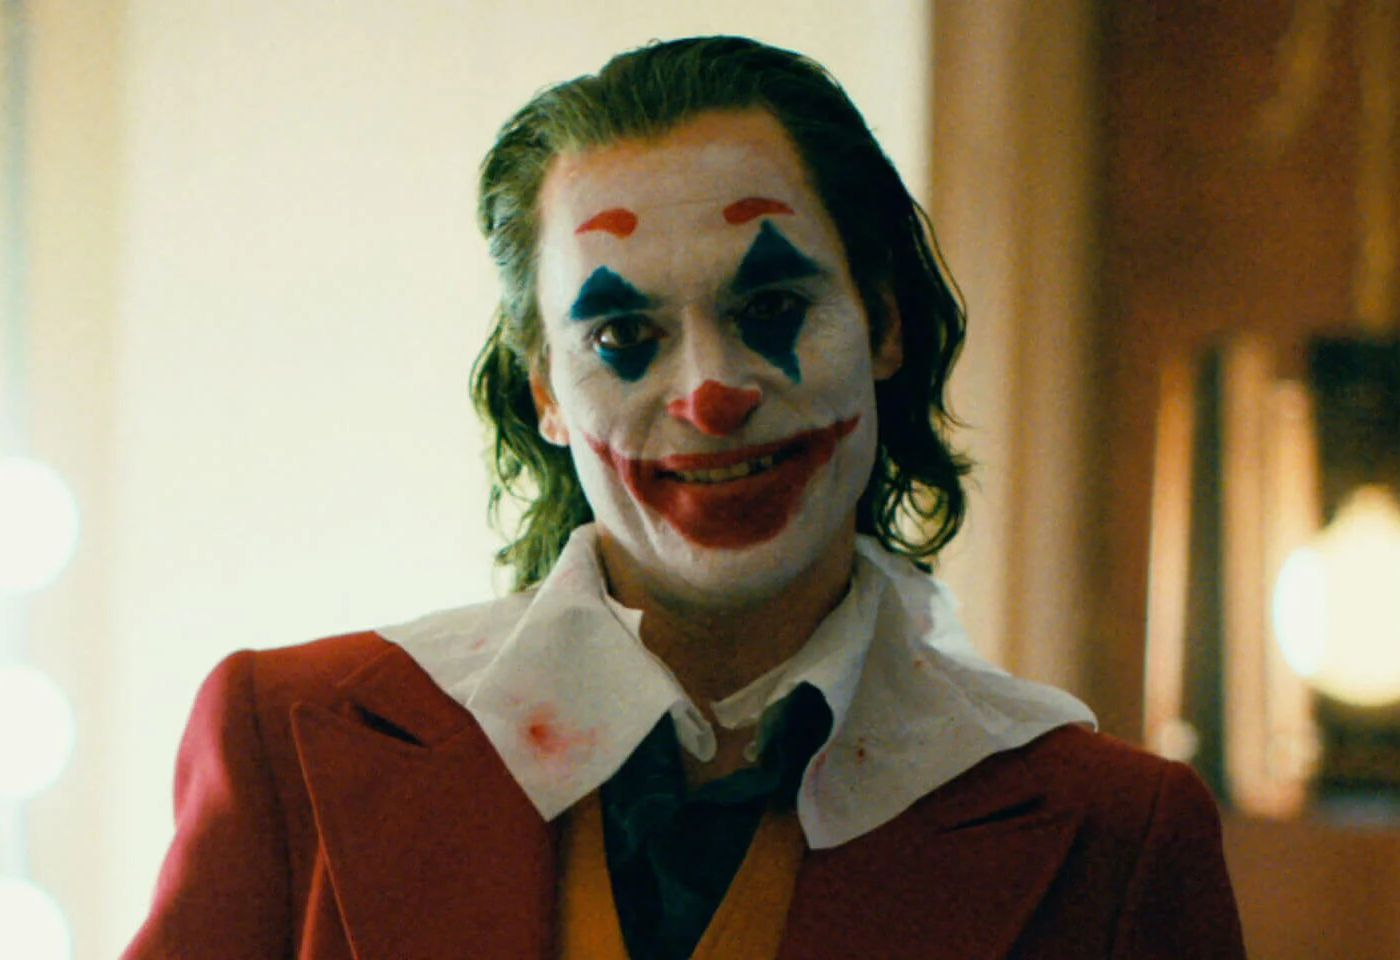 Joker Movie Reviews And Analysis Of The Controversial Comic Book Story Vox